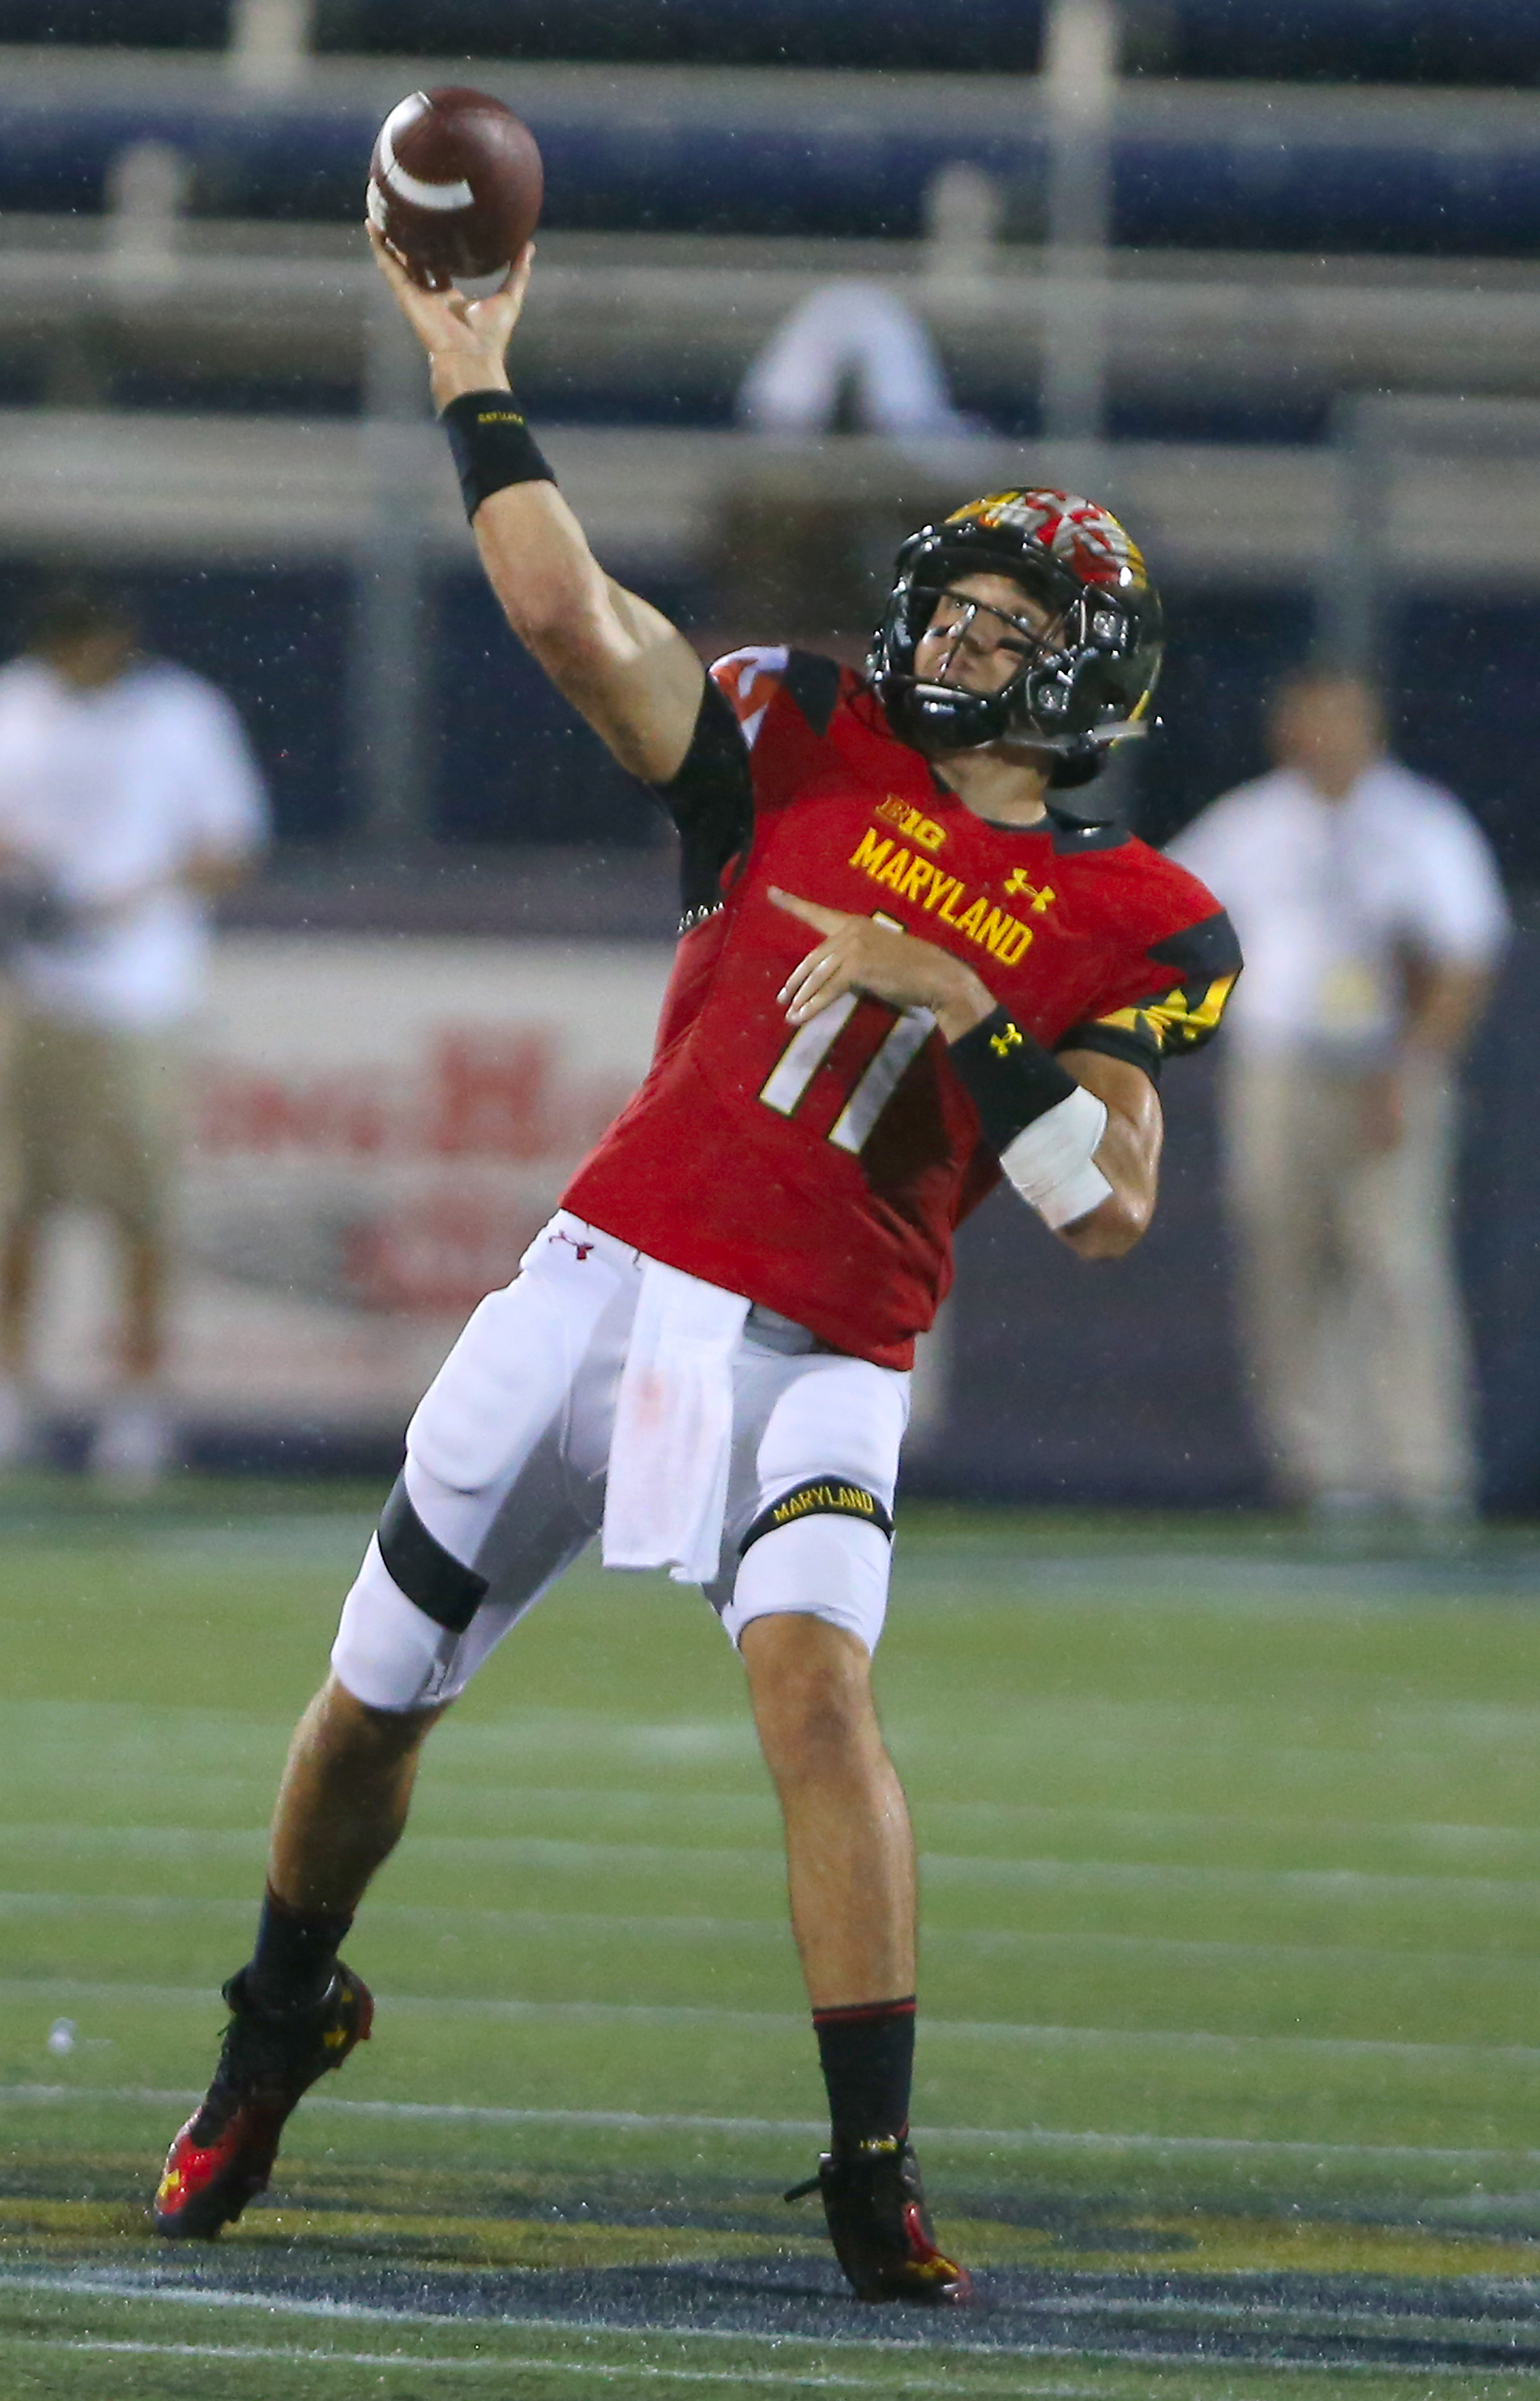 Maryland quarterback Perry Hills throws a pass against Florida International during the second half of an NCAA college football game Friday, Sept. 9, 2016, in Miami. (David Santiago/El Nuevo Herald via AP)